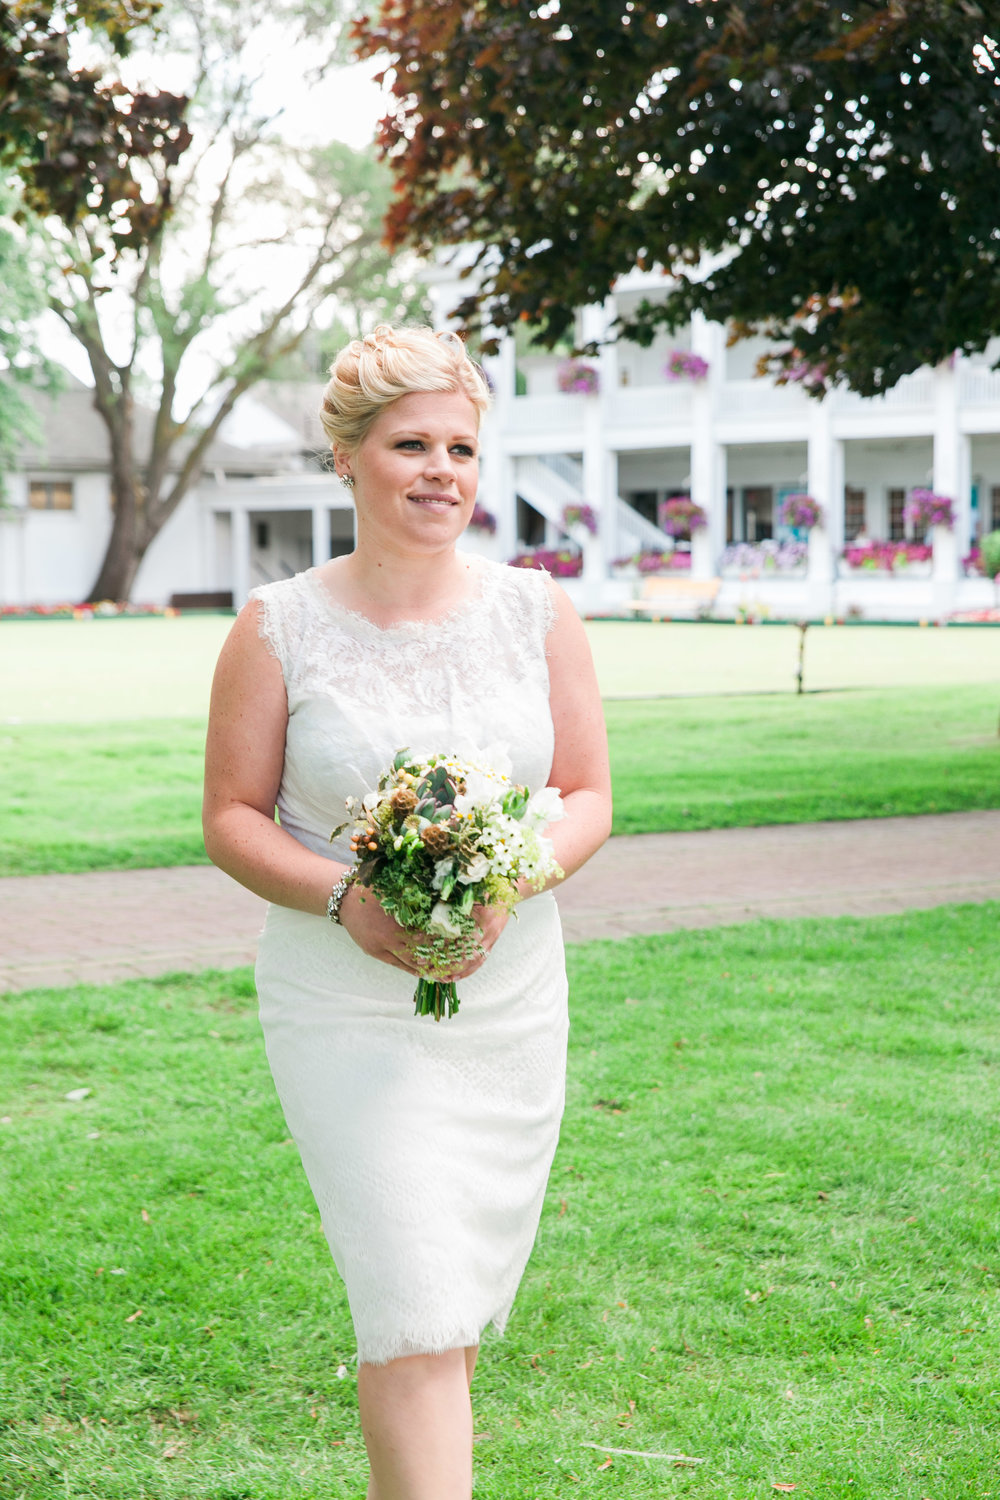 Bridesmaid walking down aisle at Yacht Club wedding